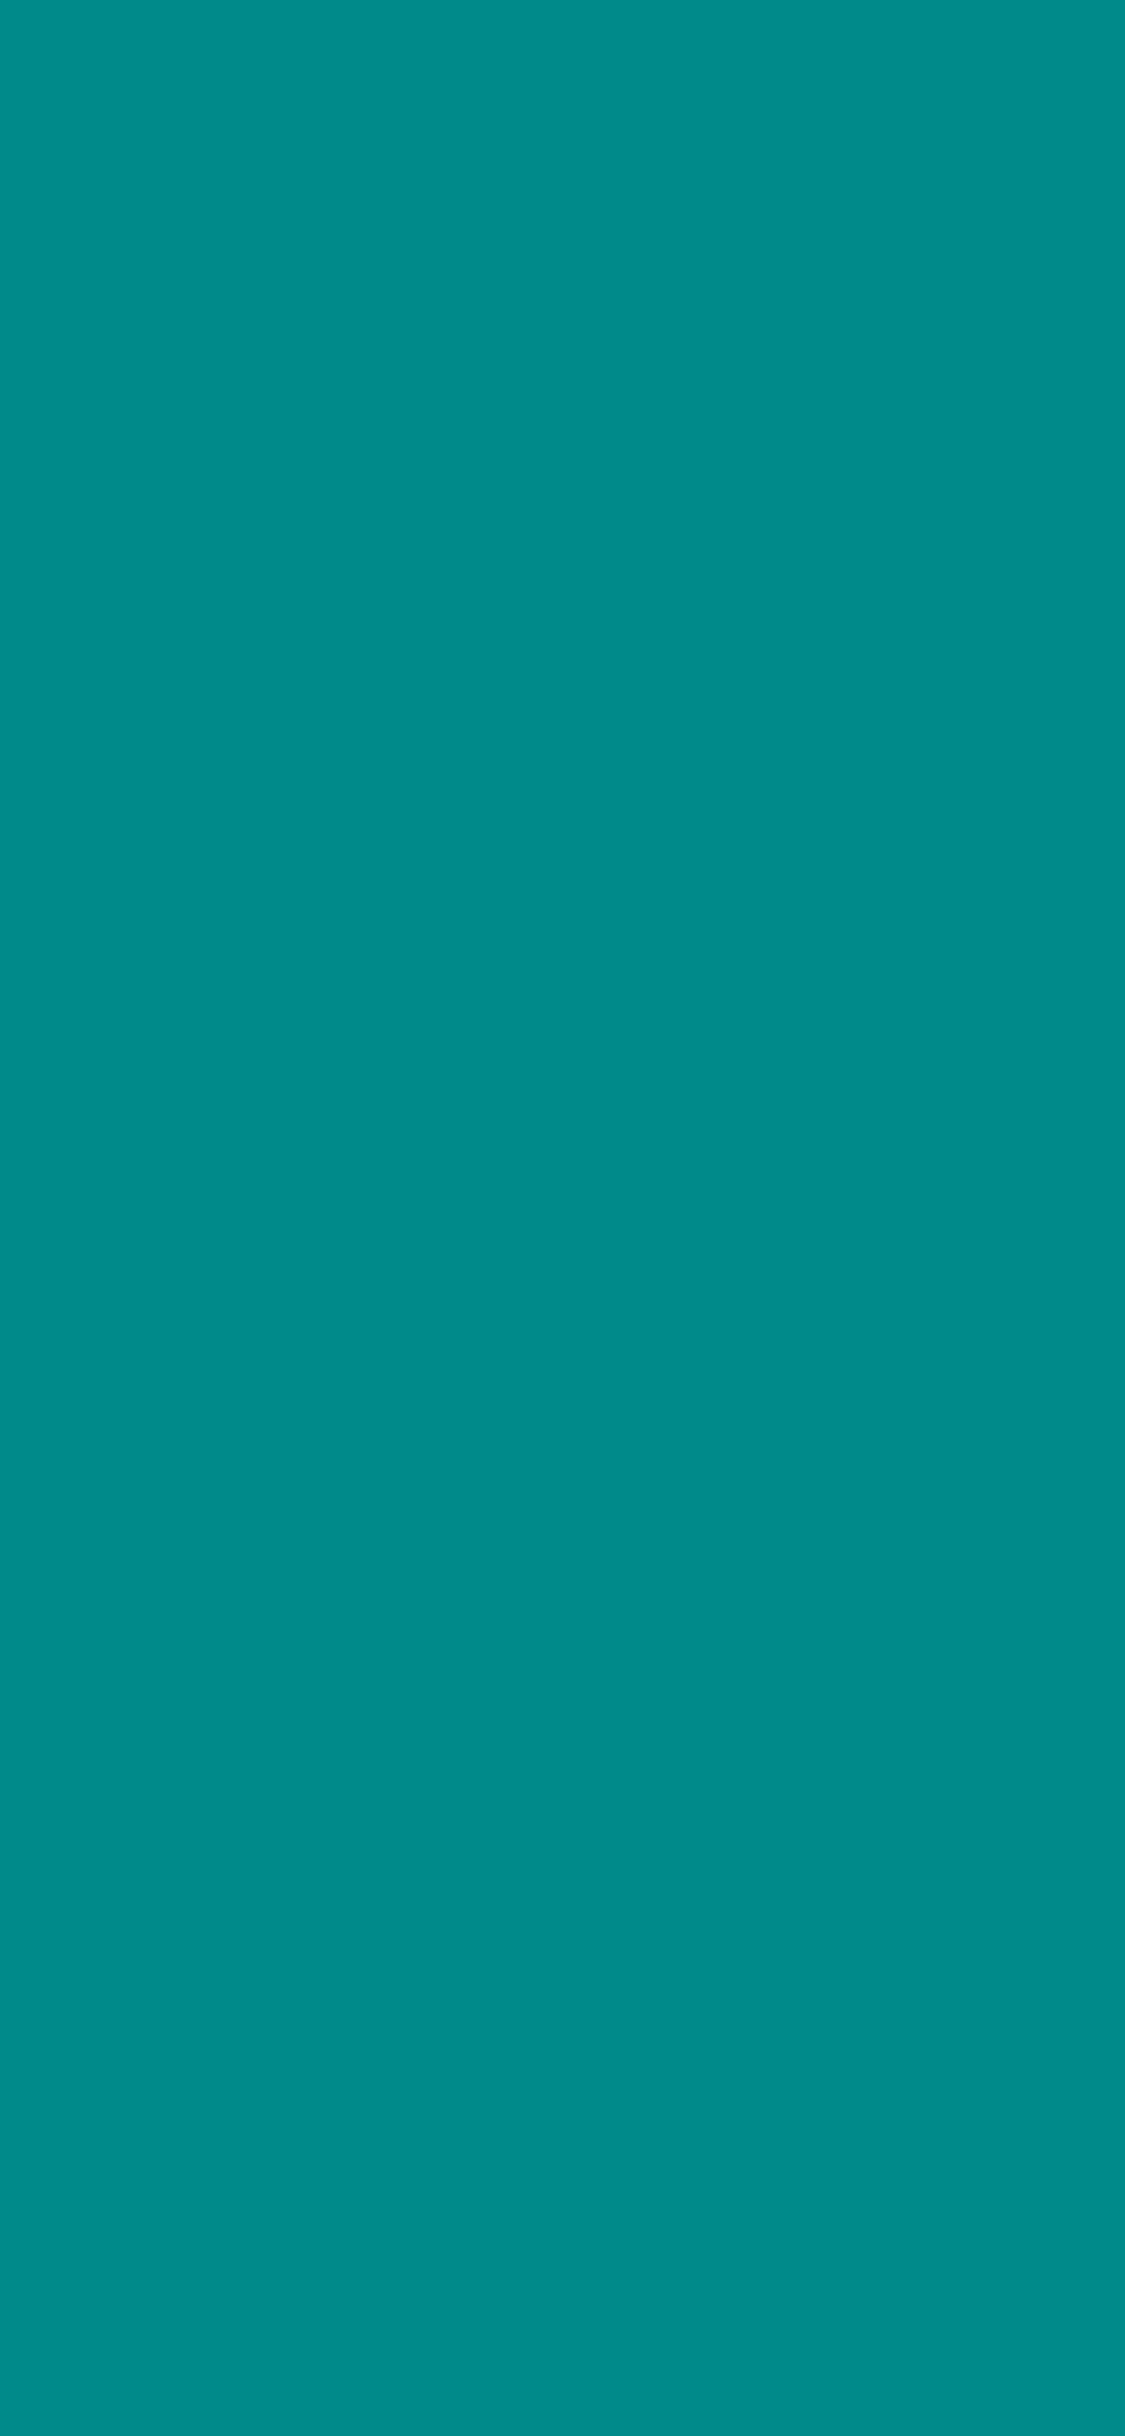 1125x2436 Dark Cyan Solid Color Background